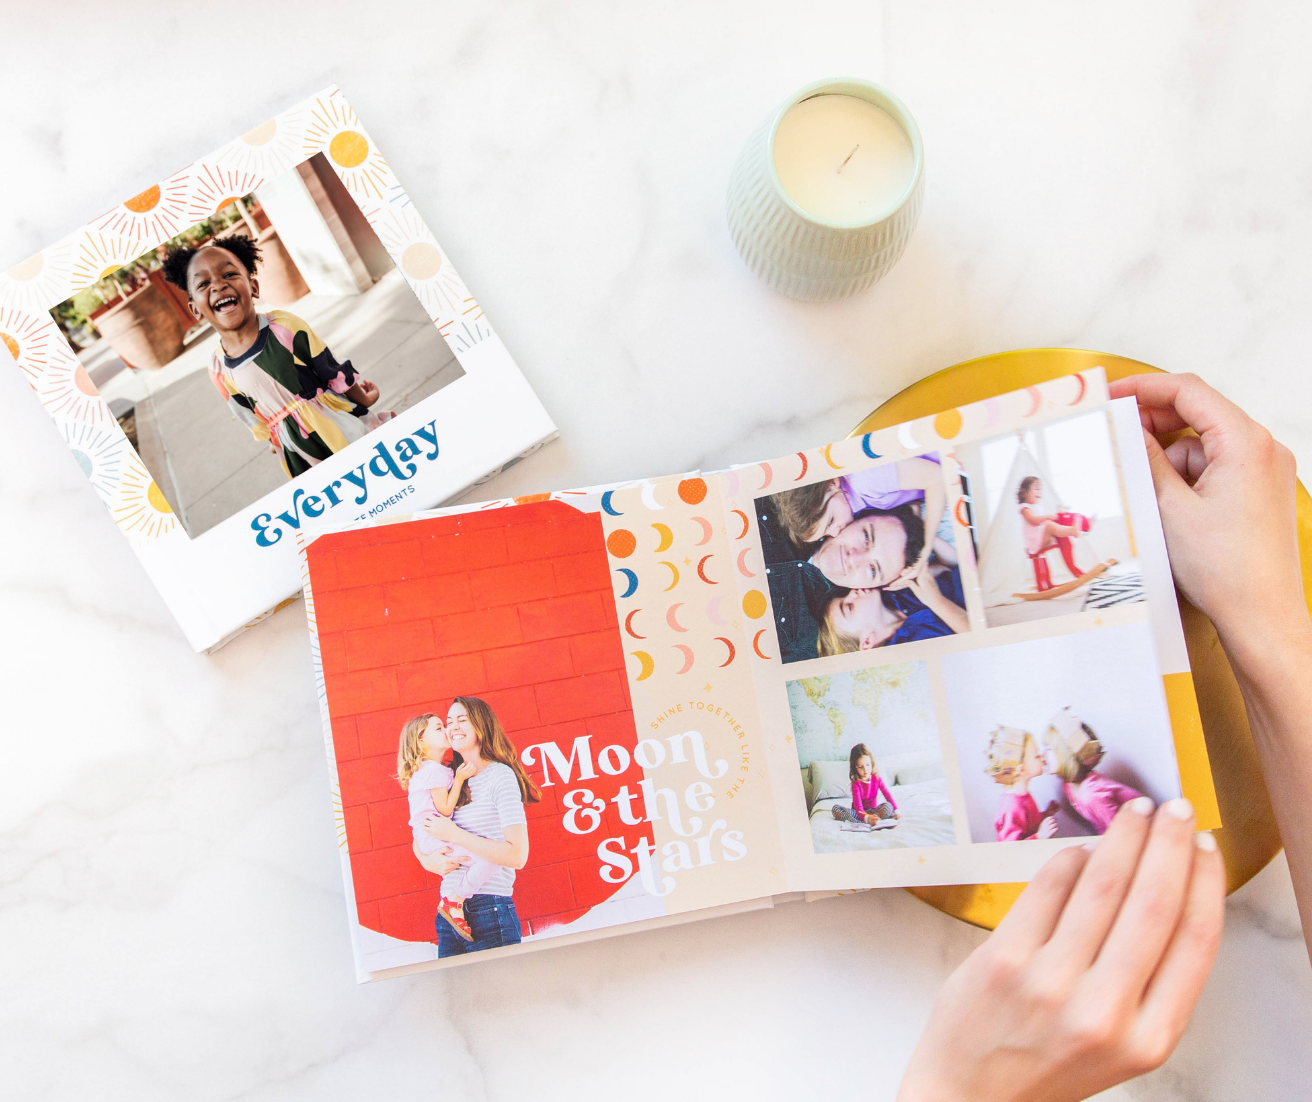 How to Turn your Photos into Digital Scrapbooks